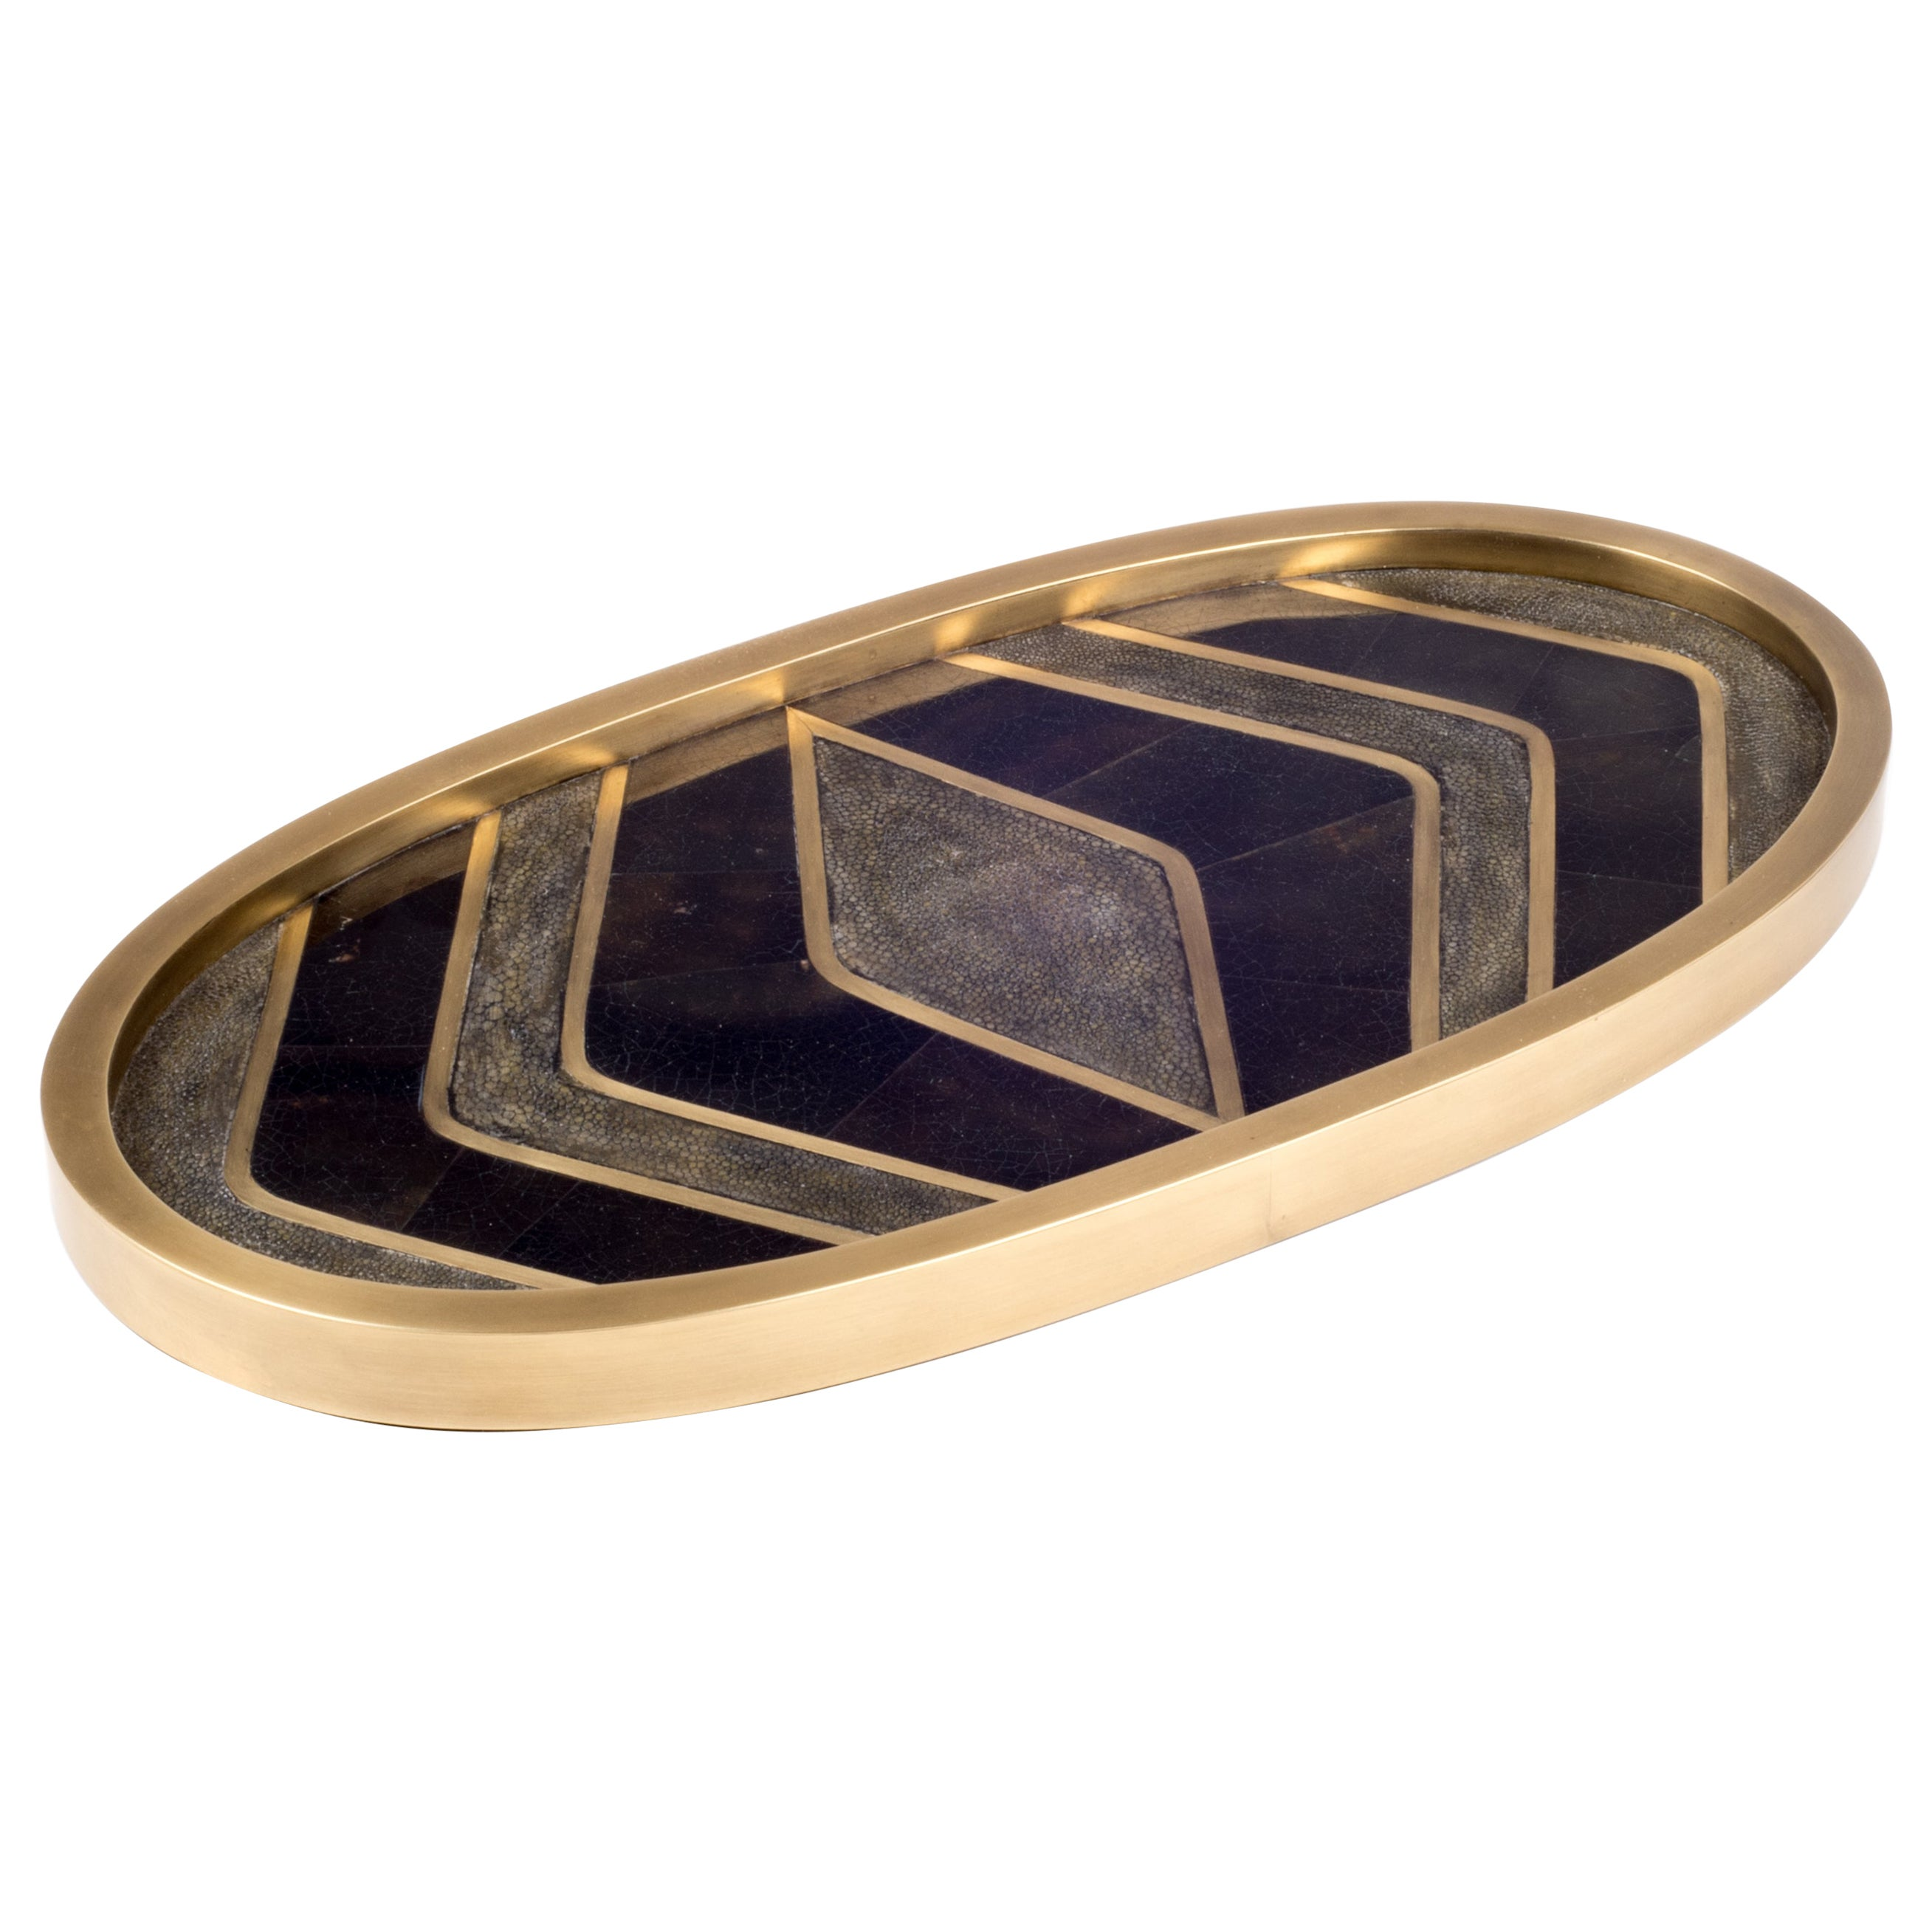 Shagreen Tray with Mix Inlay Pattern including Shell and Brass by Kifu, Paris